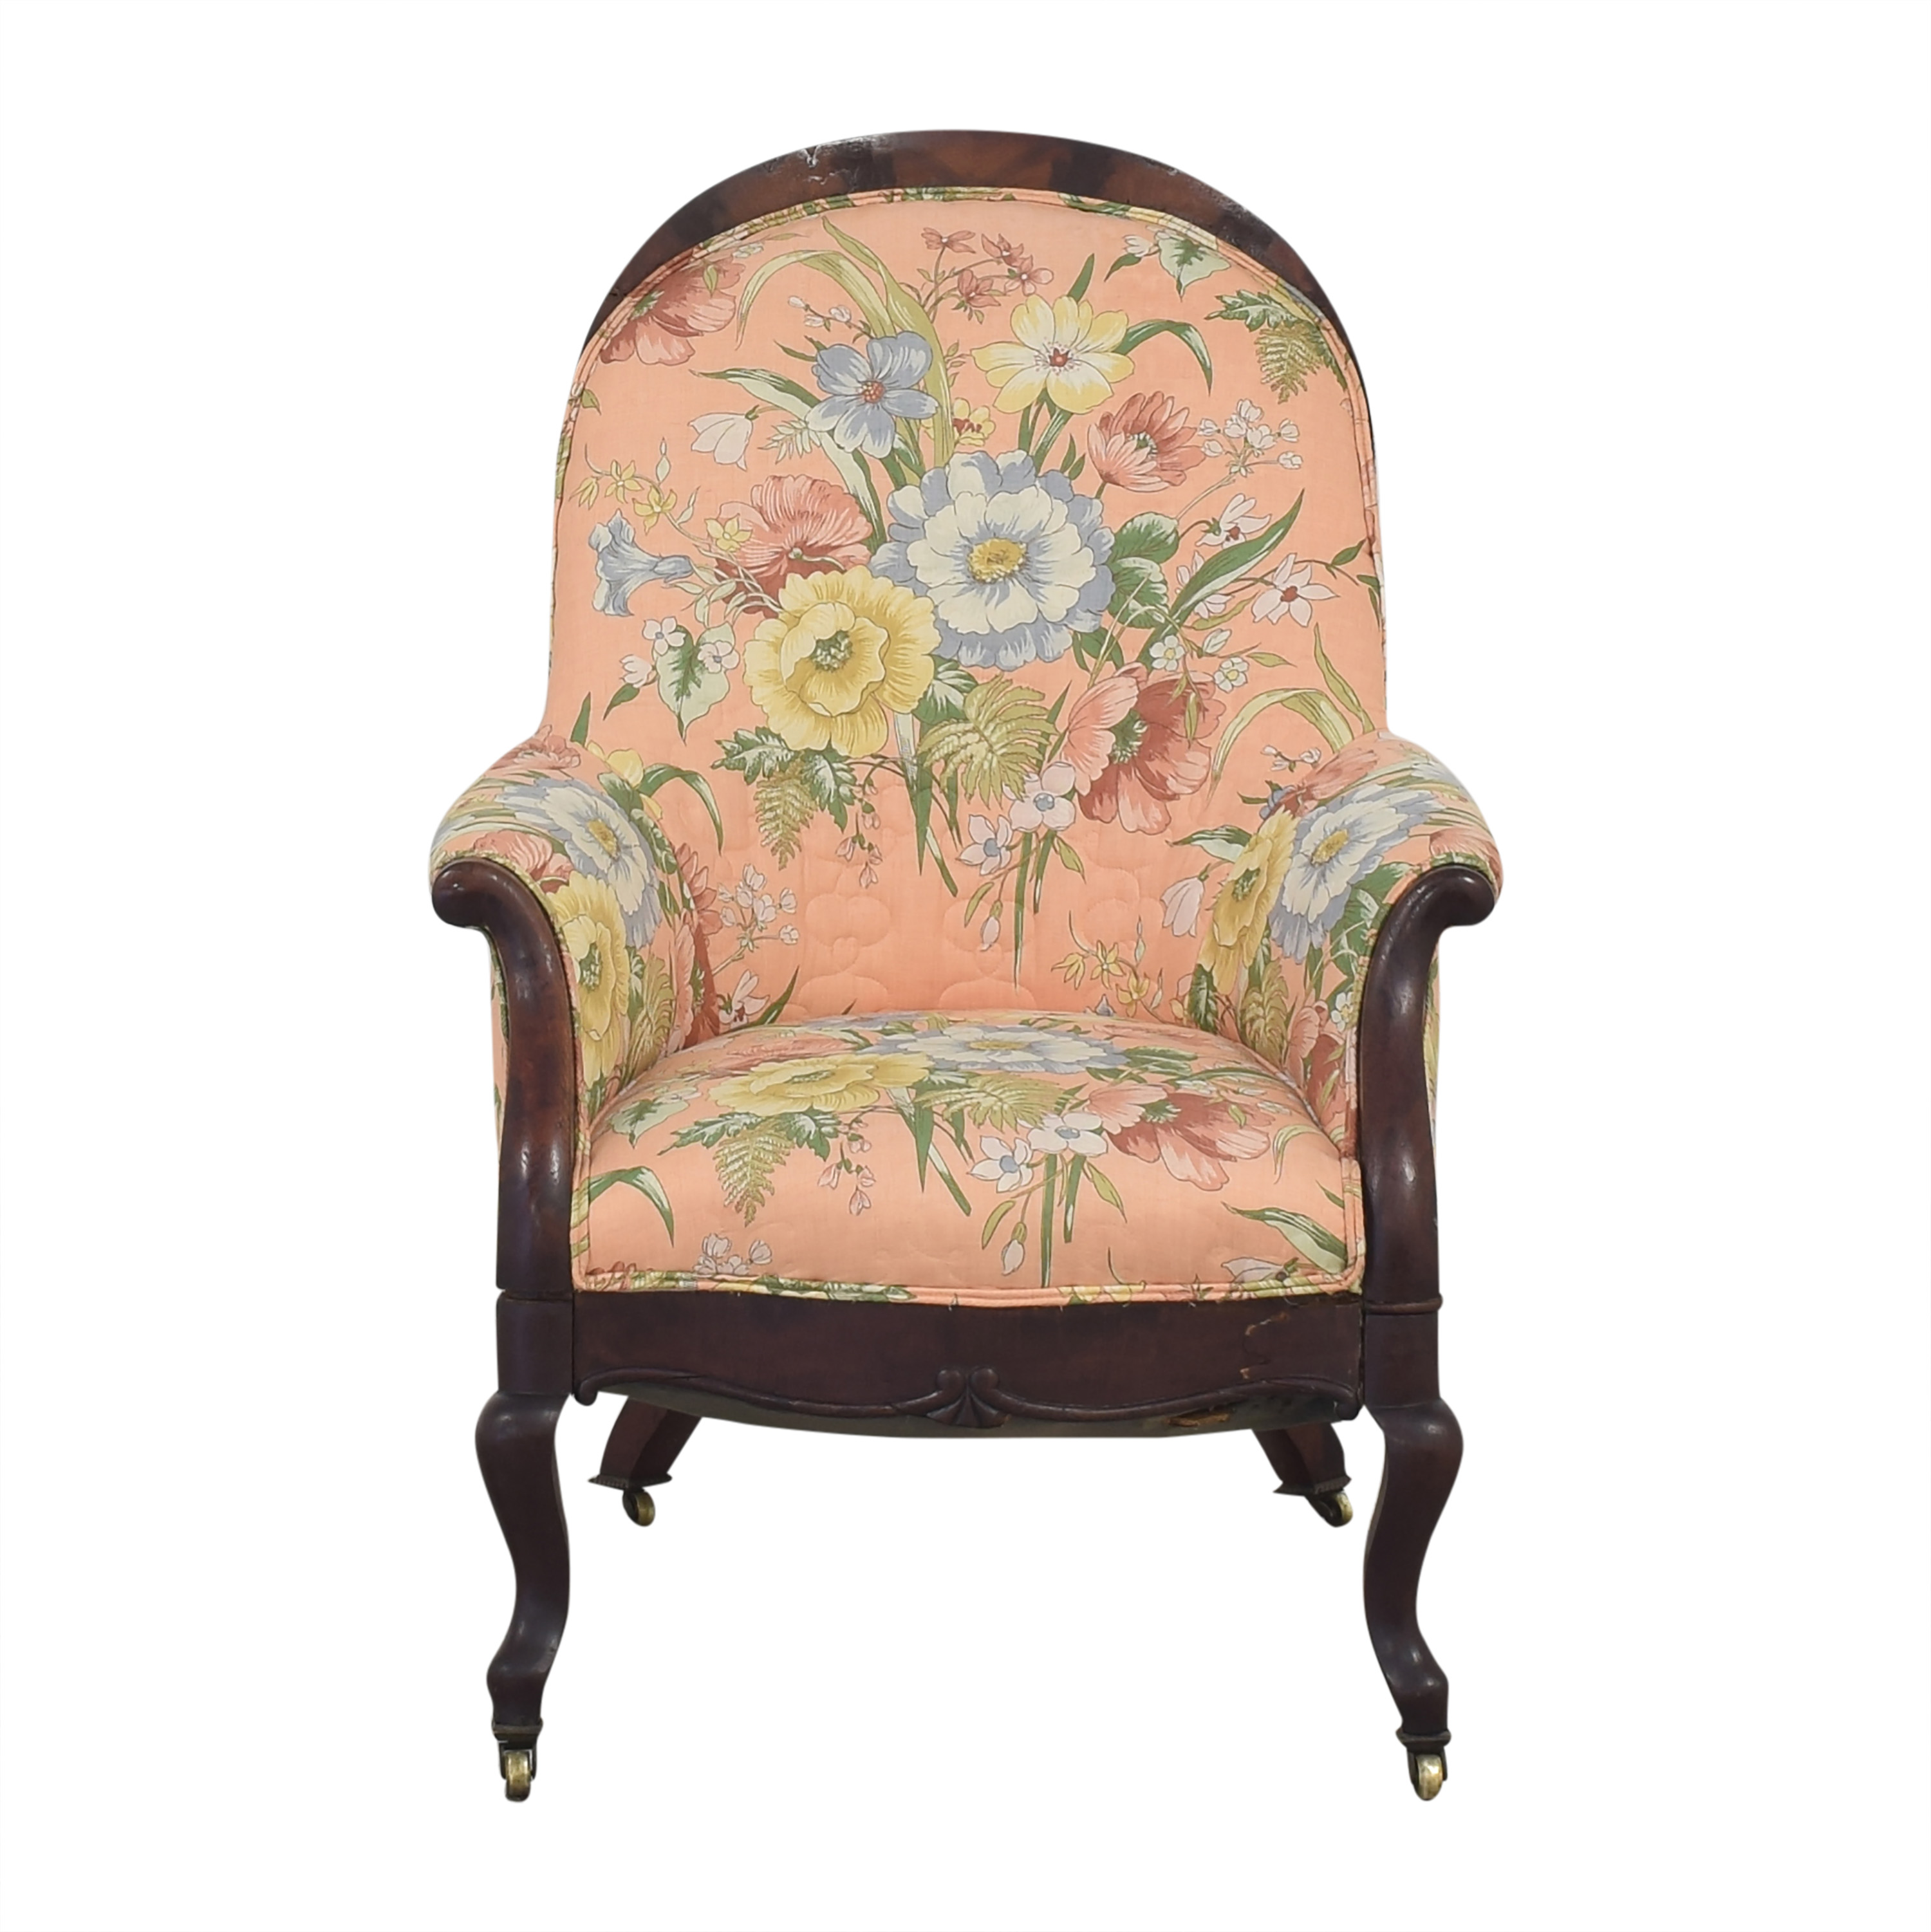 buy  Vintage Style Upholstered Accent Chair online